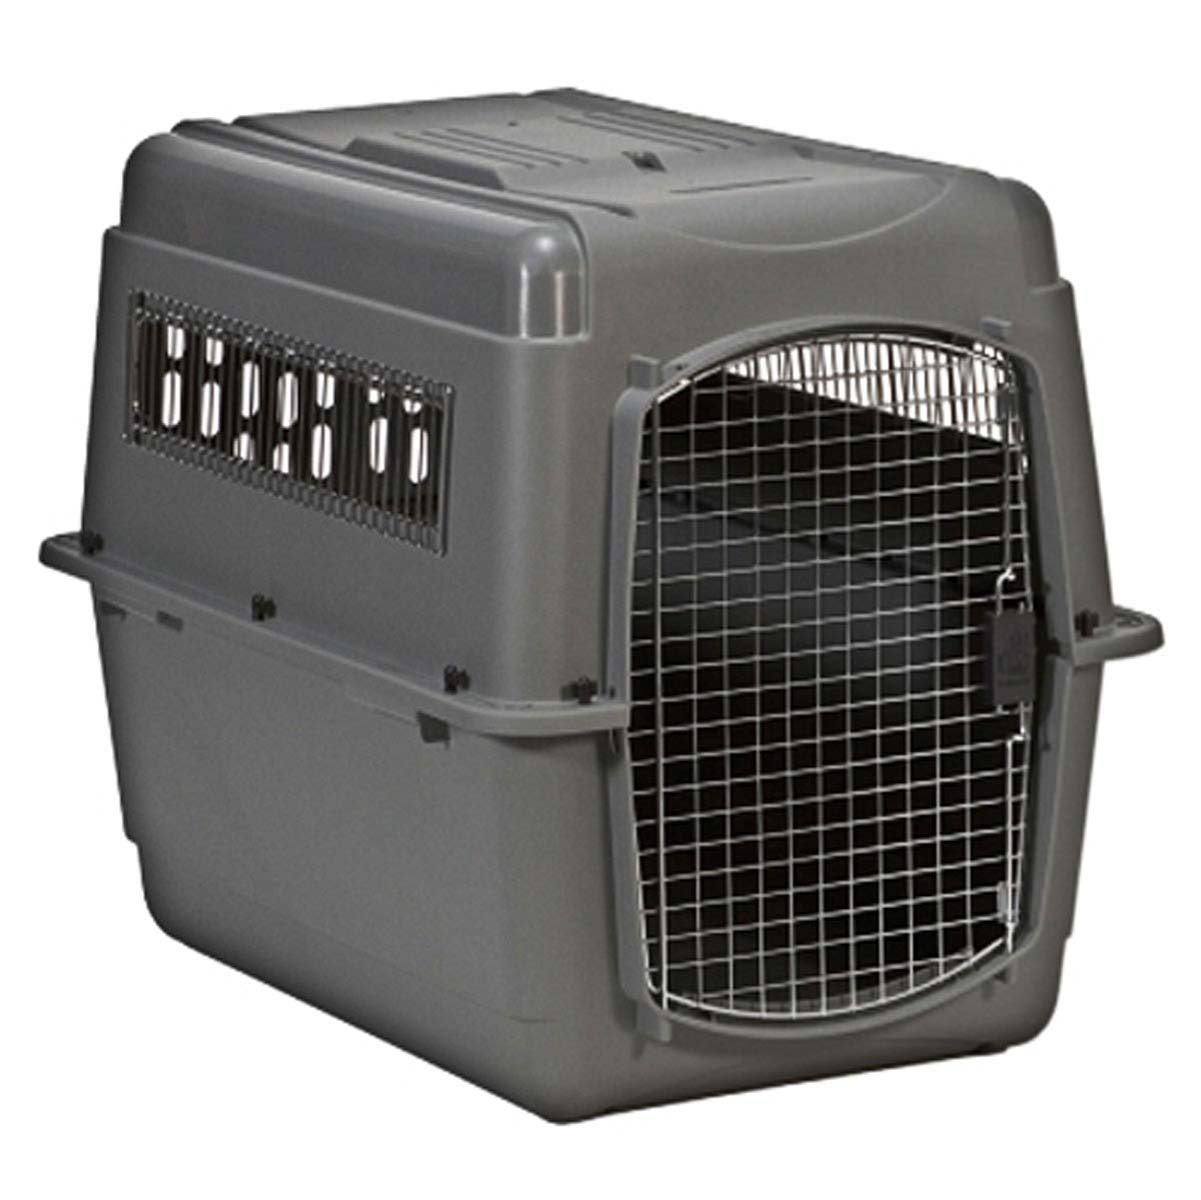 Buy Pet Carrier For Travel 36,cat carrier,dog carrier,in low price online at petindiaonline